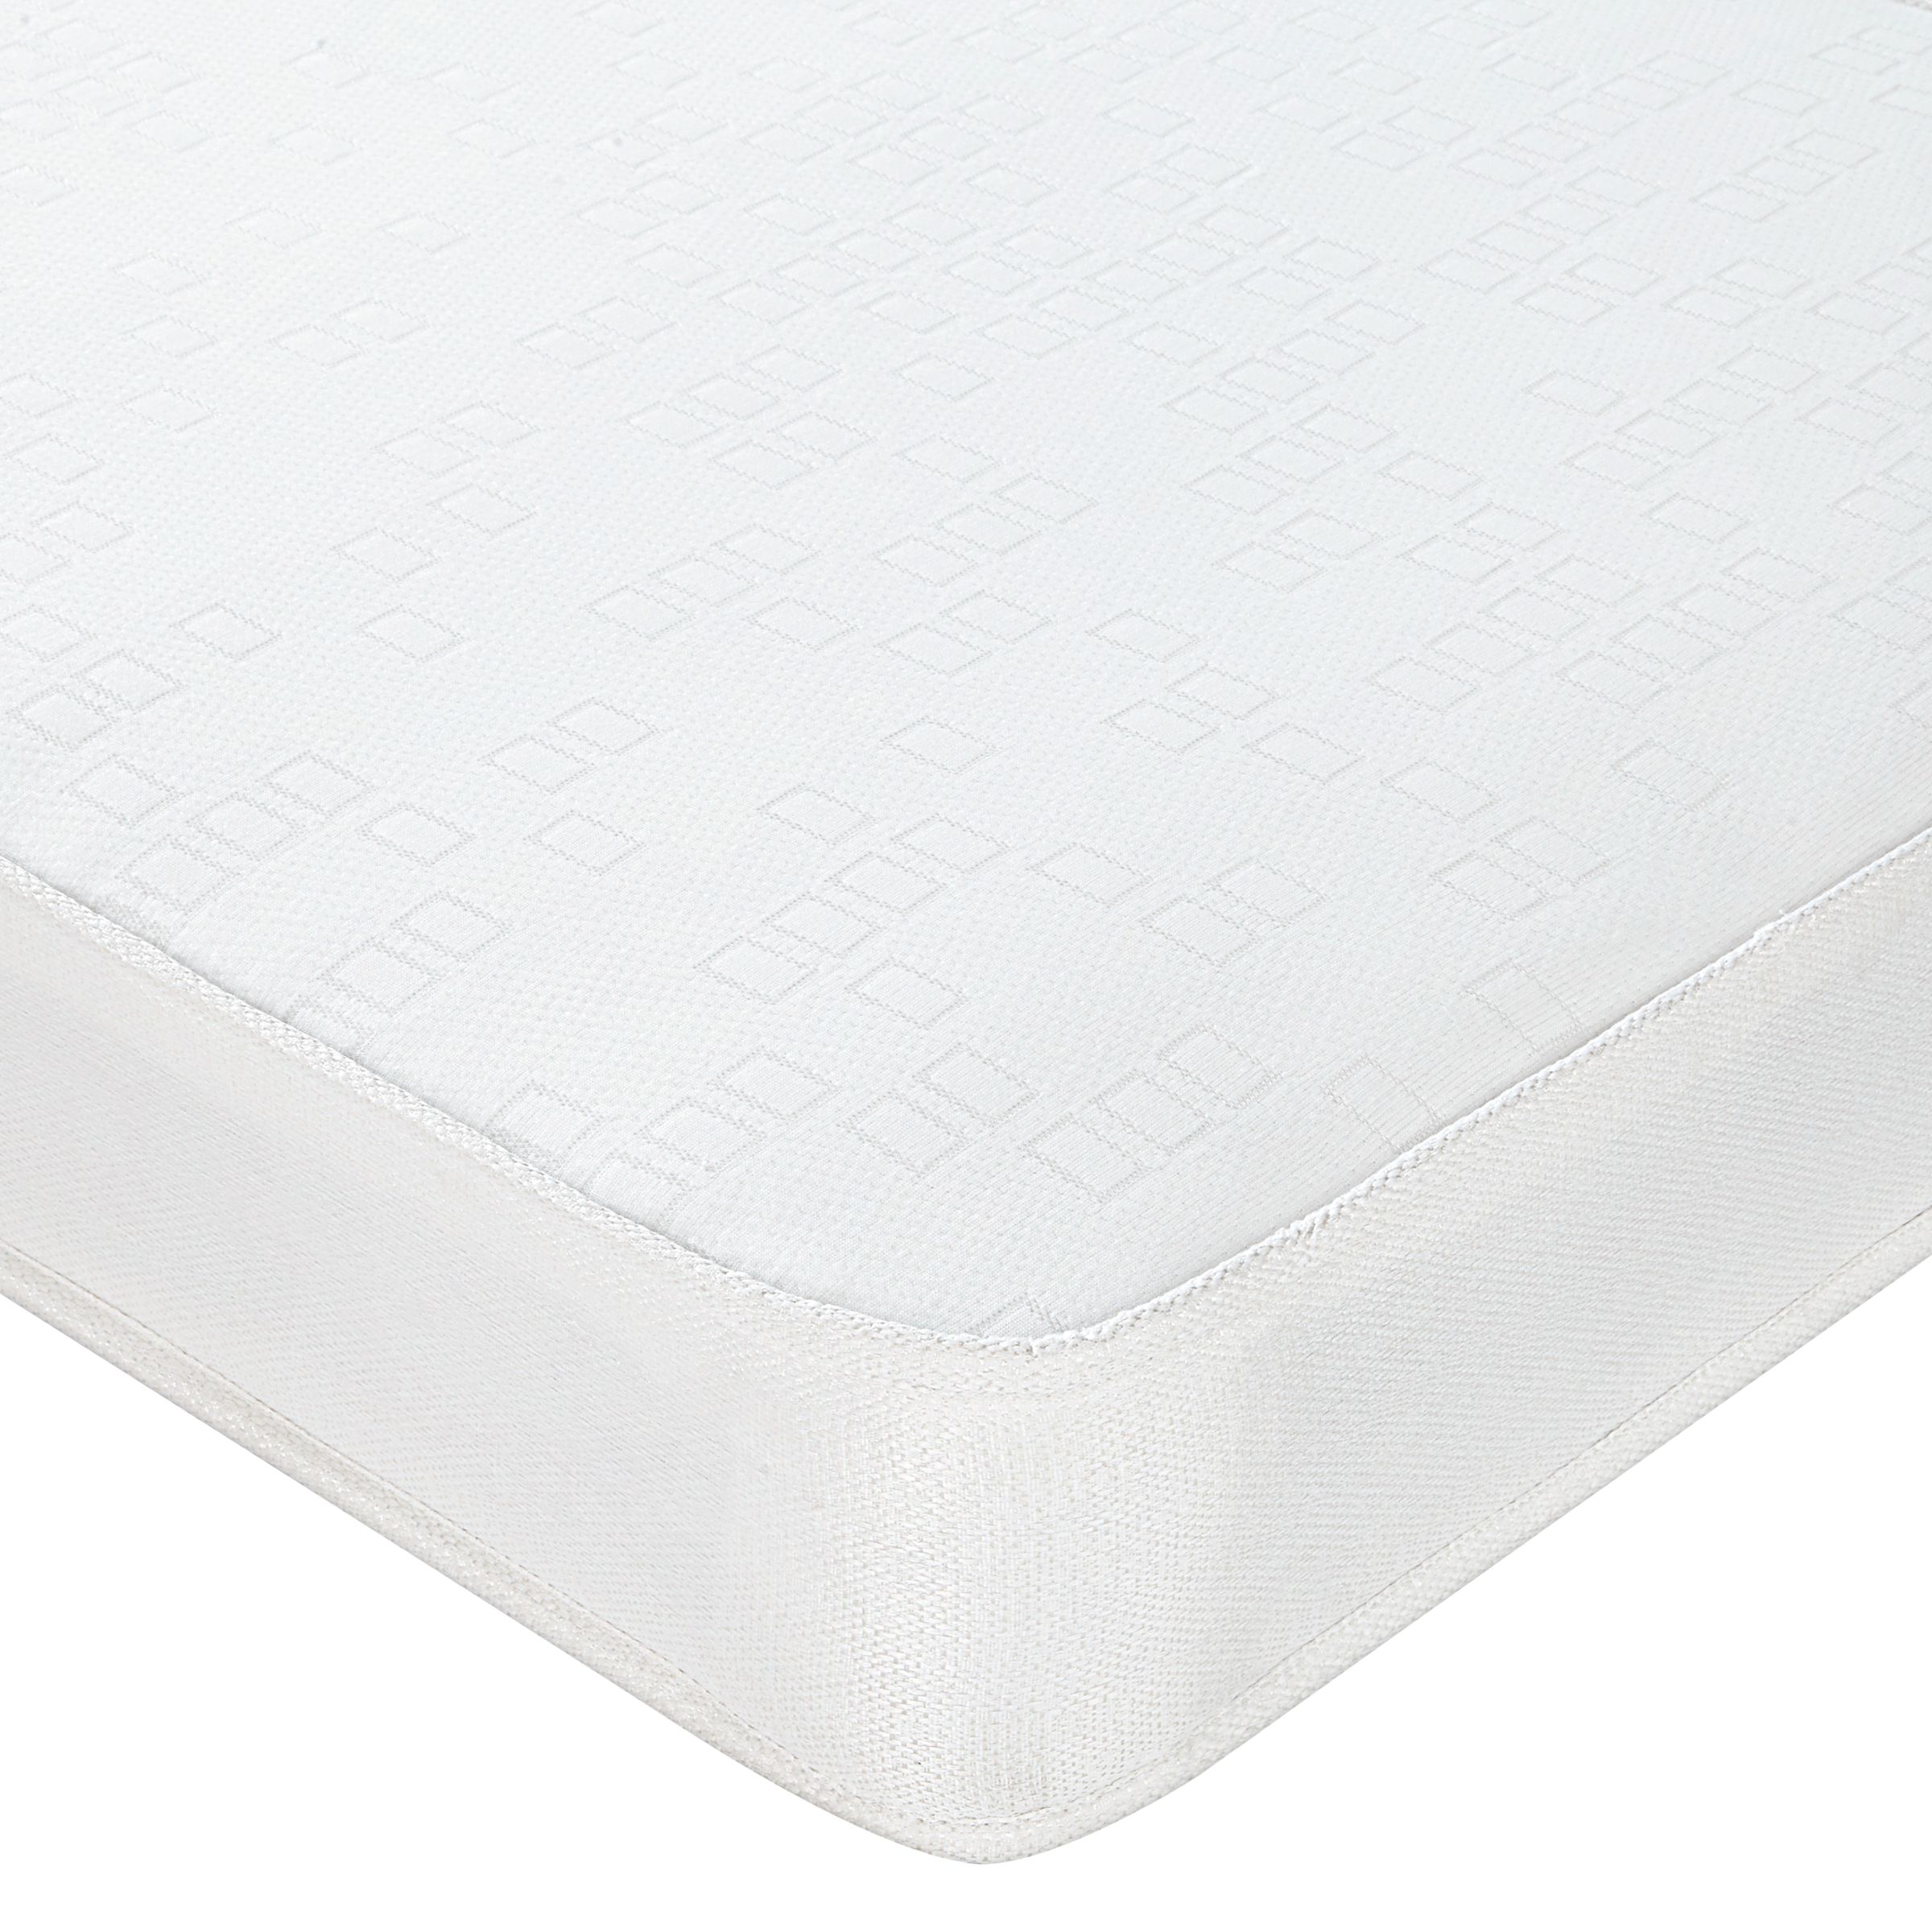 John Lewis The Basics Open Spring No Turn Mattress, Double